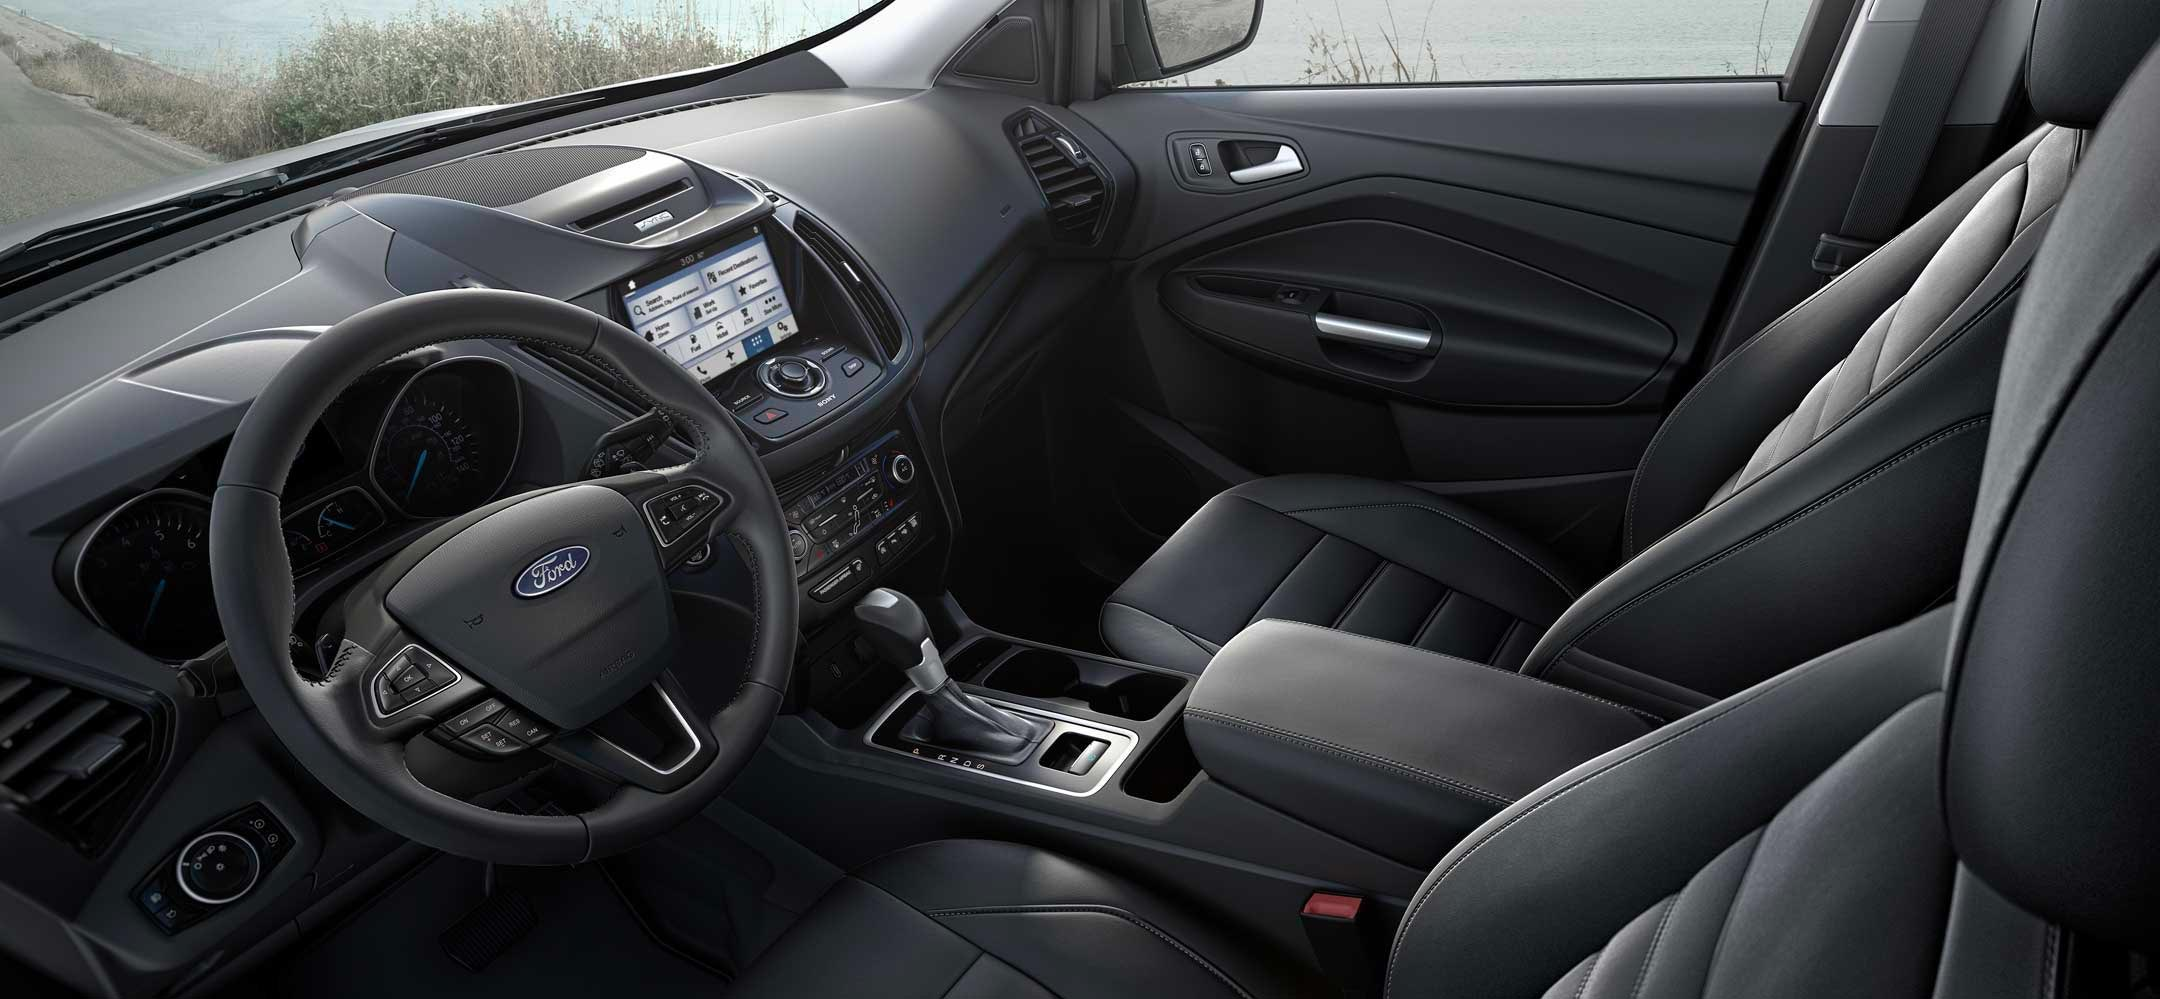 Interior image of the Ford Escape blue at Aurora Ford Hay River in NWT